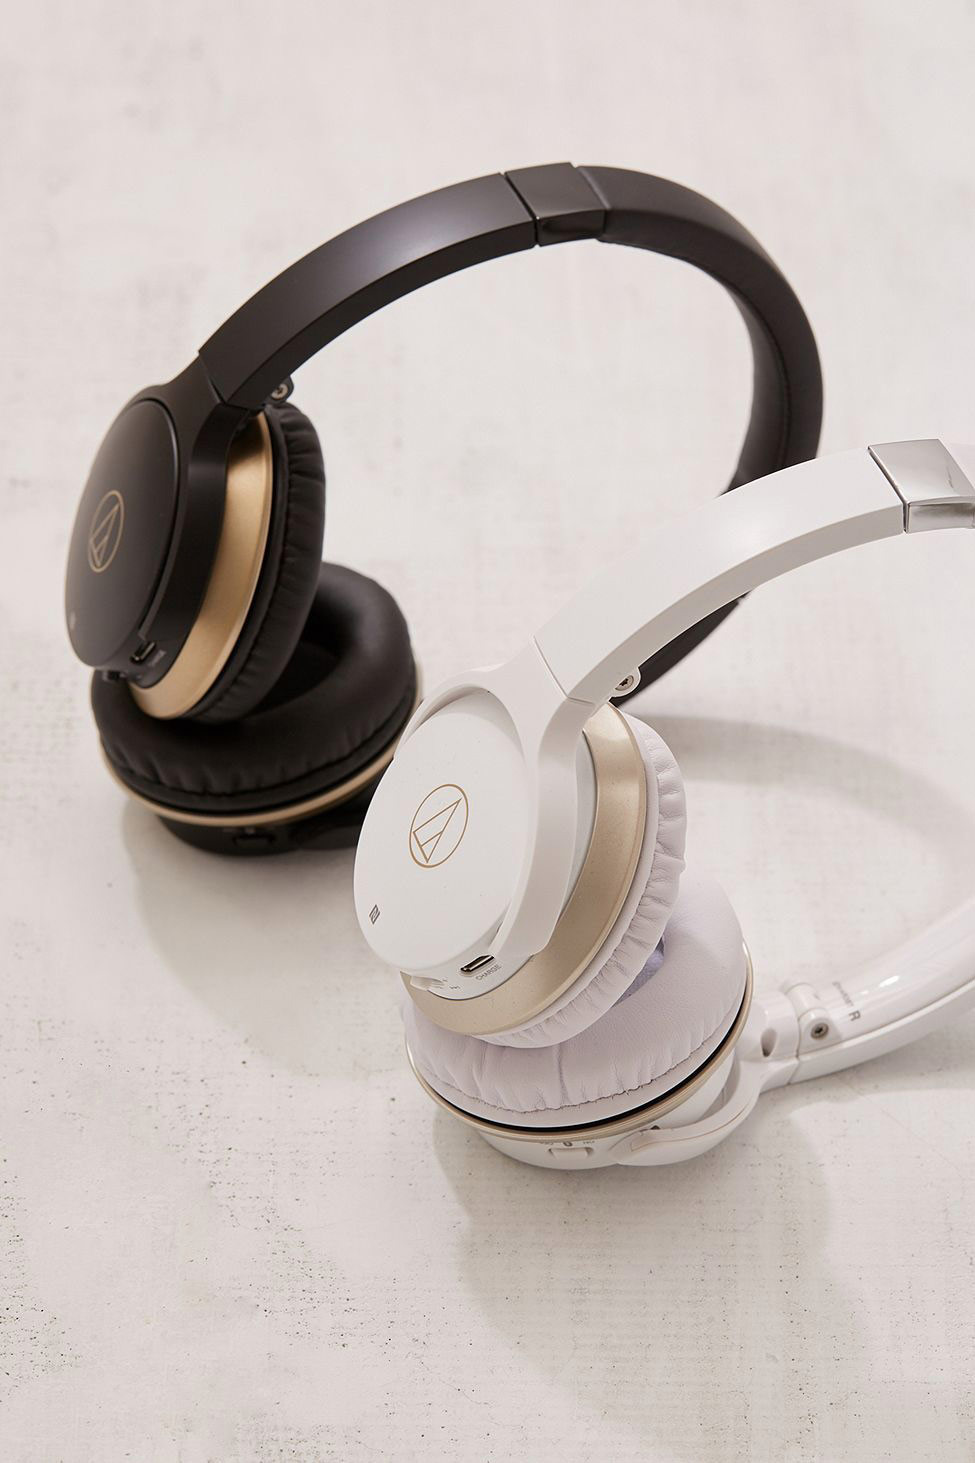 Audio-Technica SonicFuel Wireless Headphones